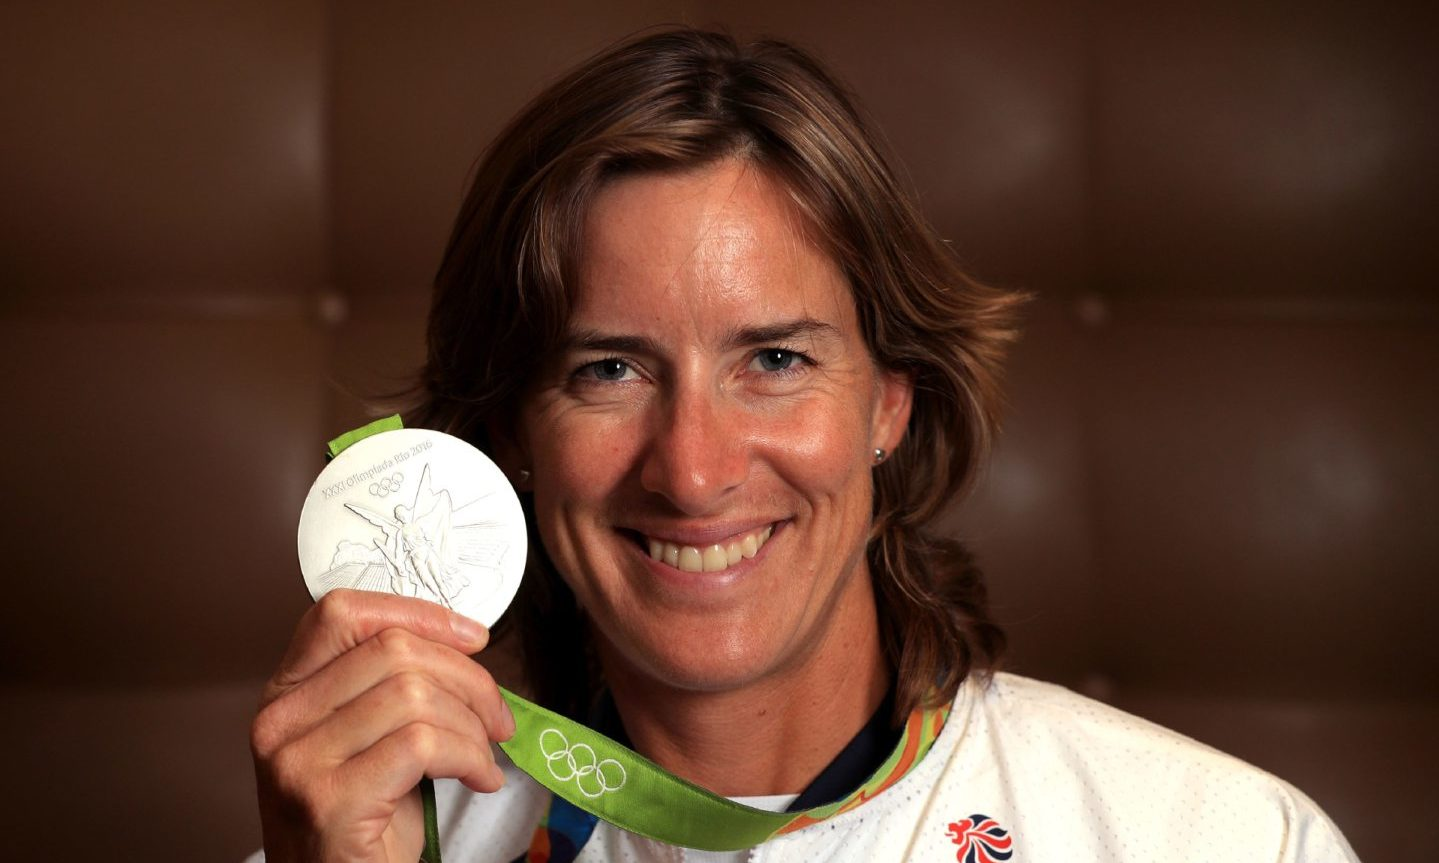 Katherine Grainger won her first Olympic medal in 2000 in Sydney.